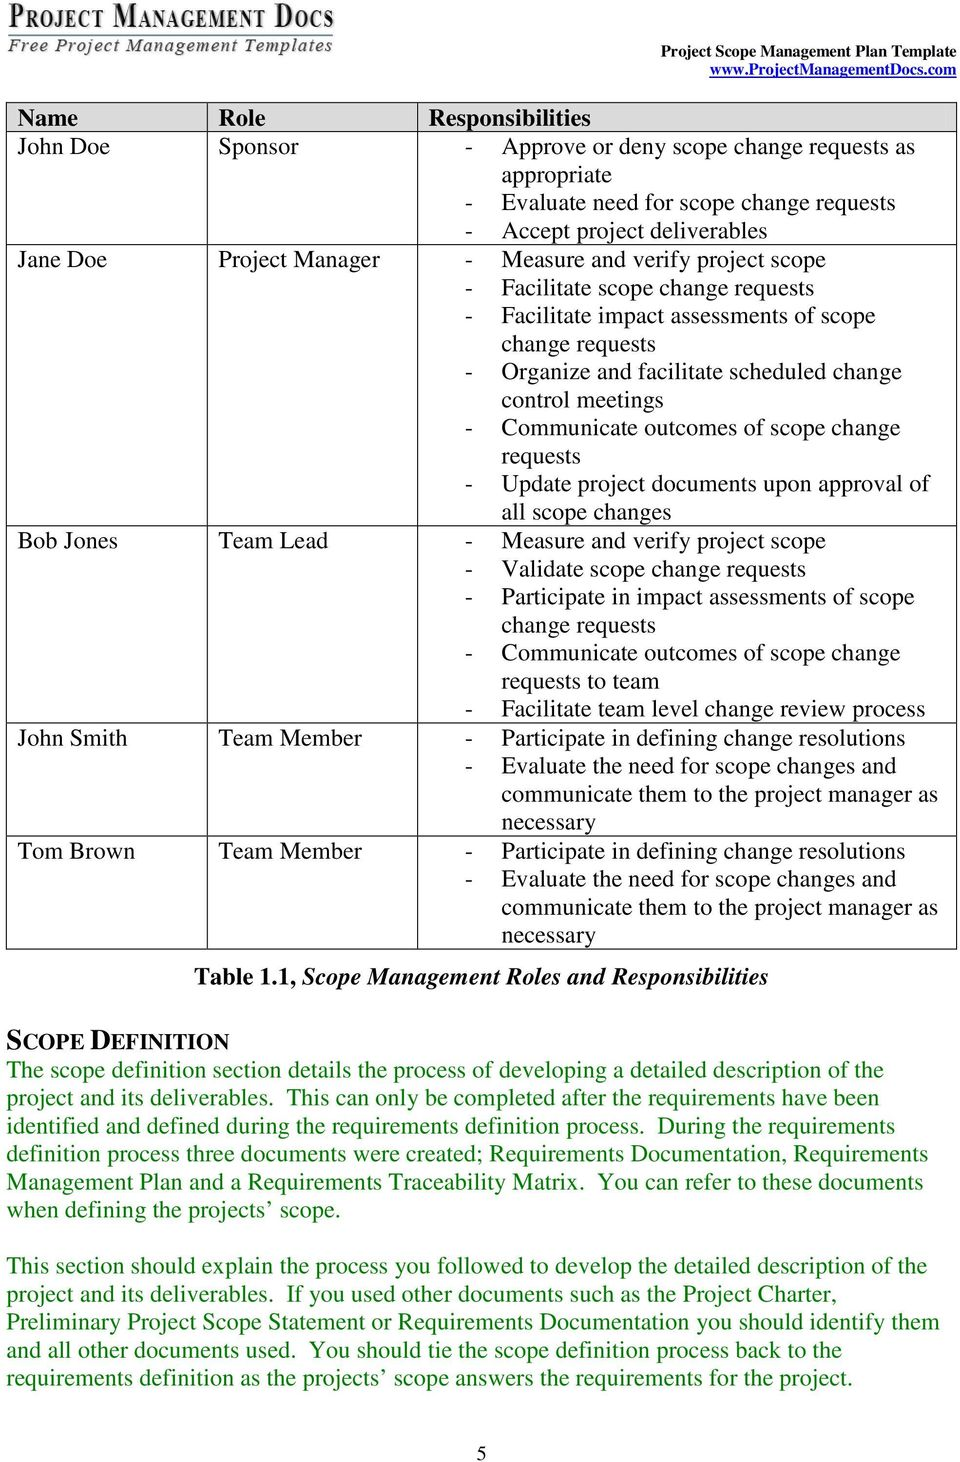 Scope Management Plan Project Name Pdf